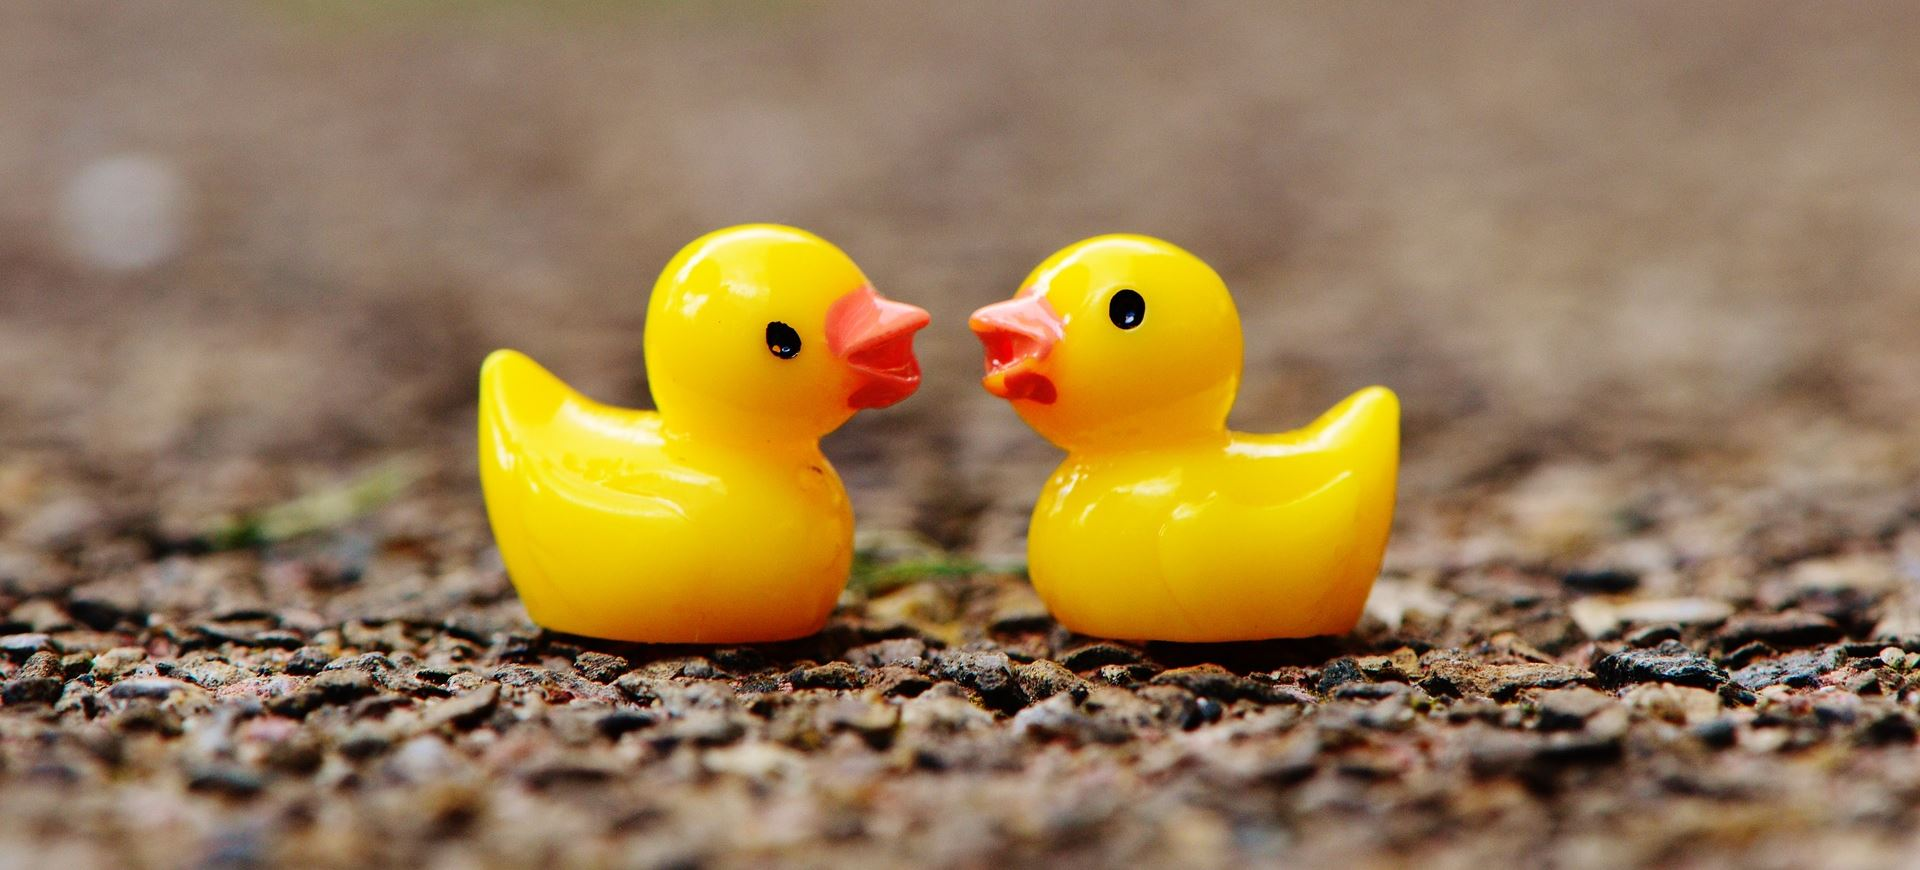 A pair of ducks, not programming